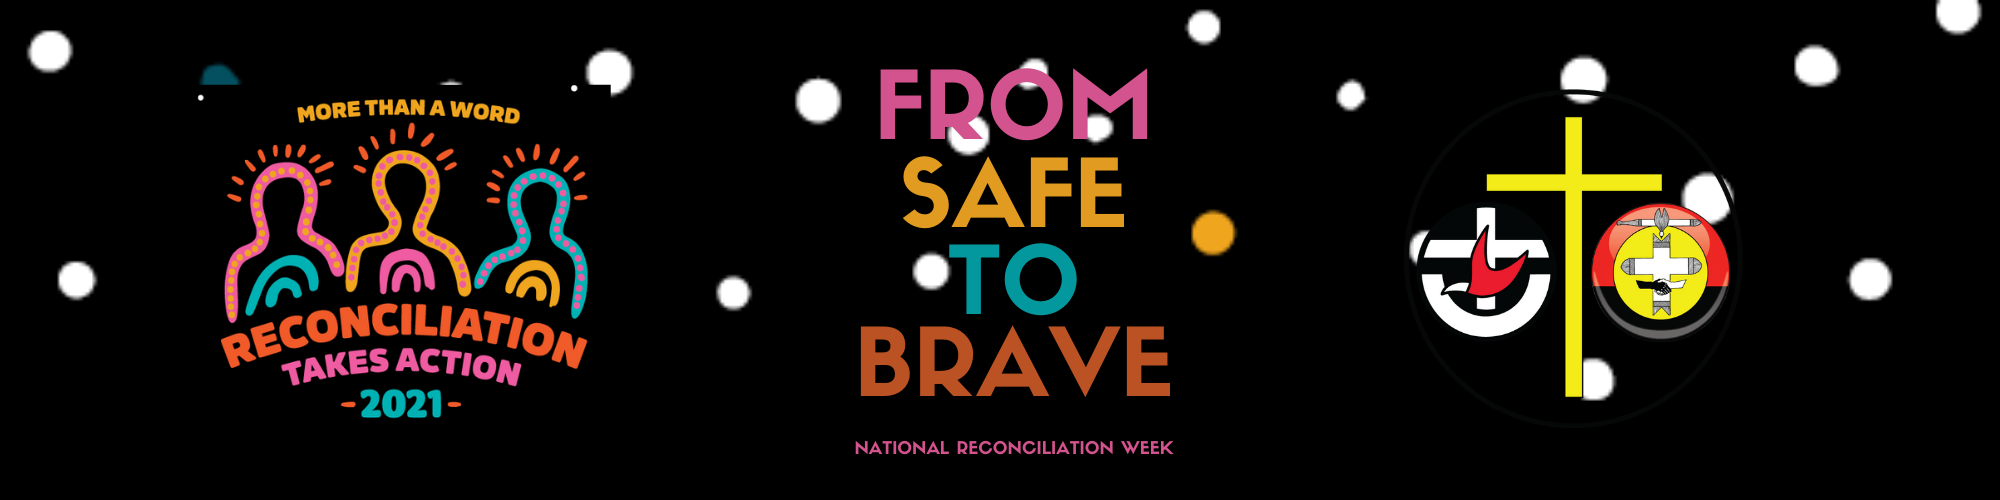 From safe to brave: National Reconciliation Week 2021, Uniting Church Australia